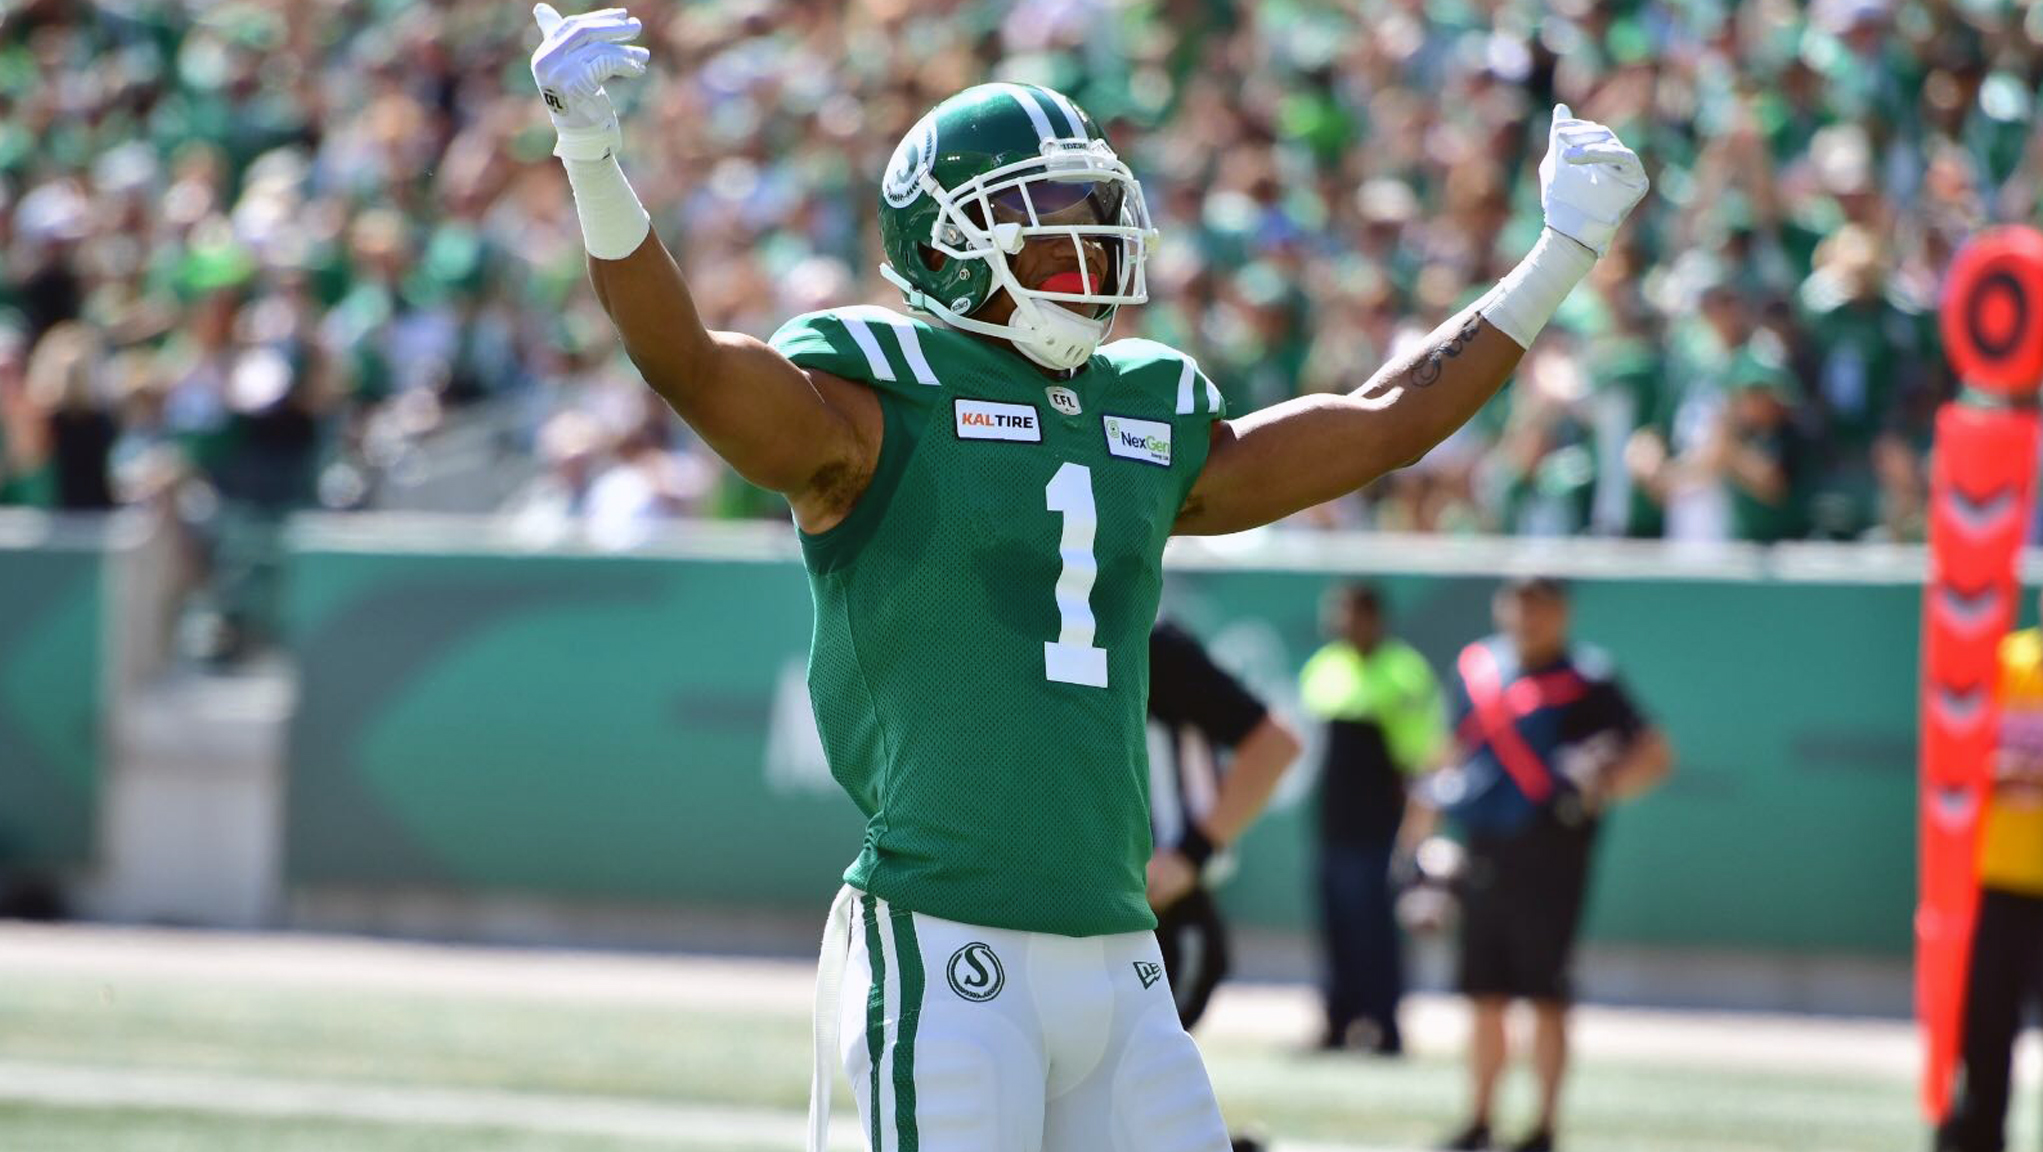 Evans: 'I feel like I'm one of the best players in this league' - CFL.ca